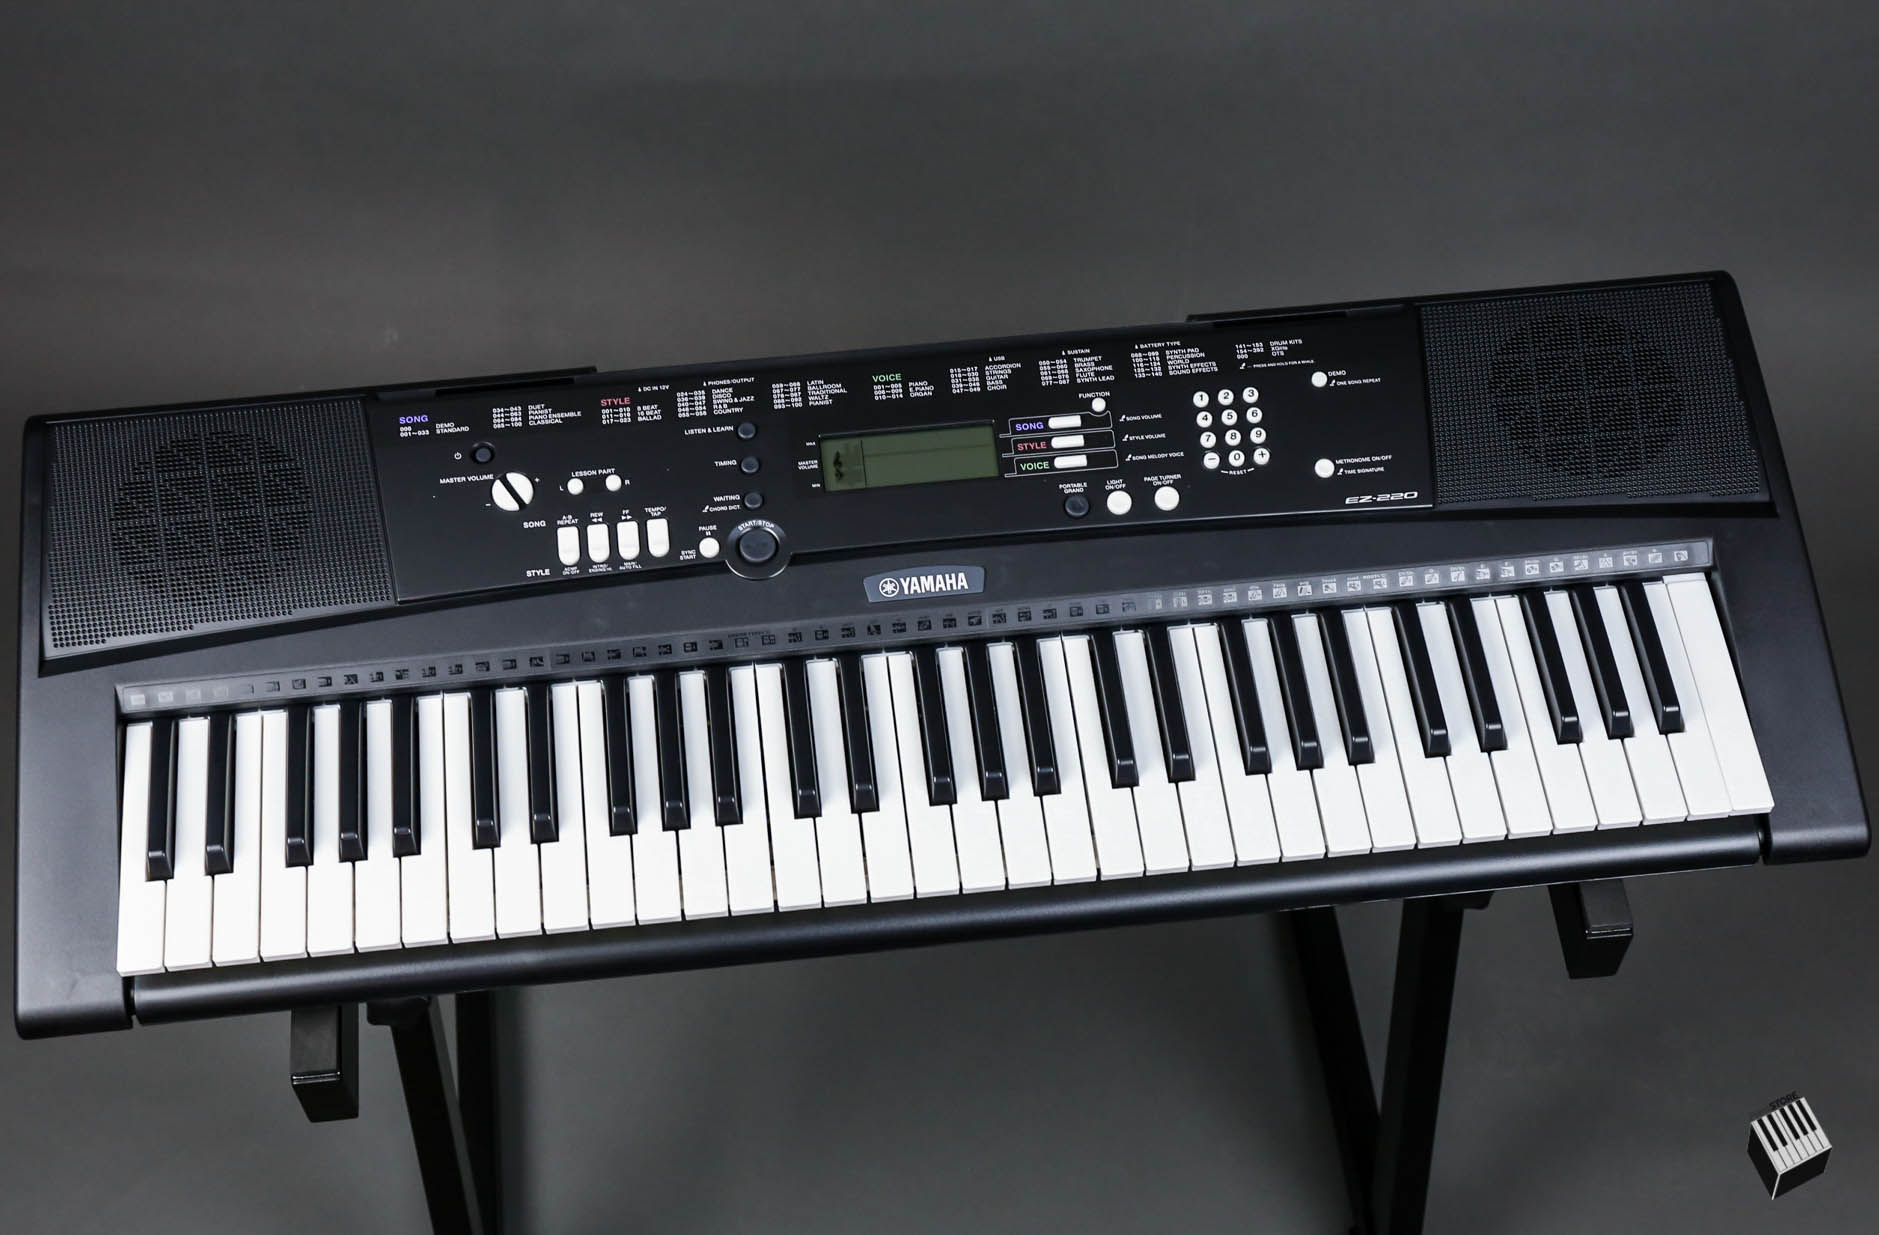 yamaha ez 220 keyboard keyboardy sklep internetowy. Black Bedroom Furniture Sets. Home Design Ideas